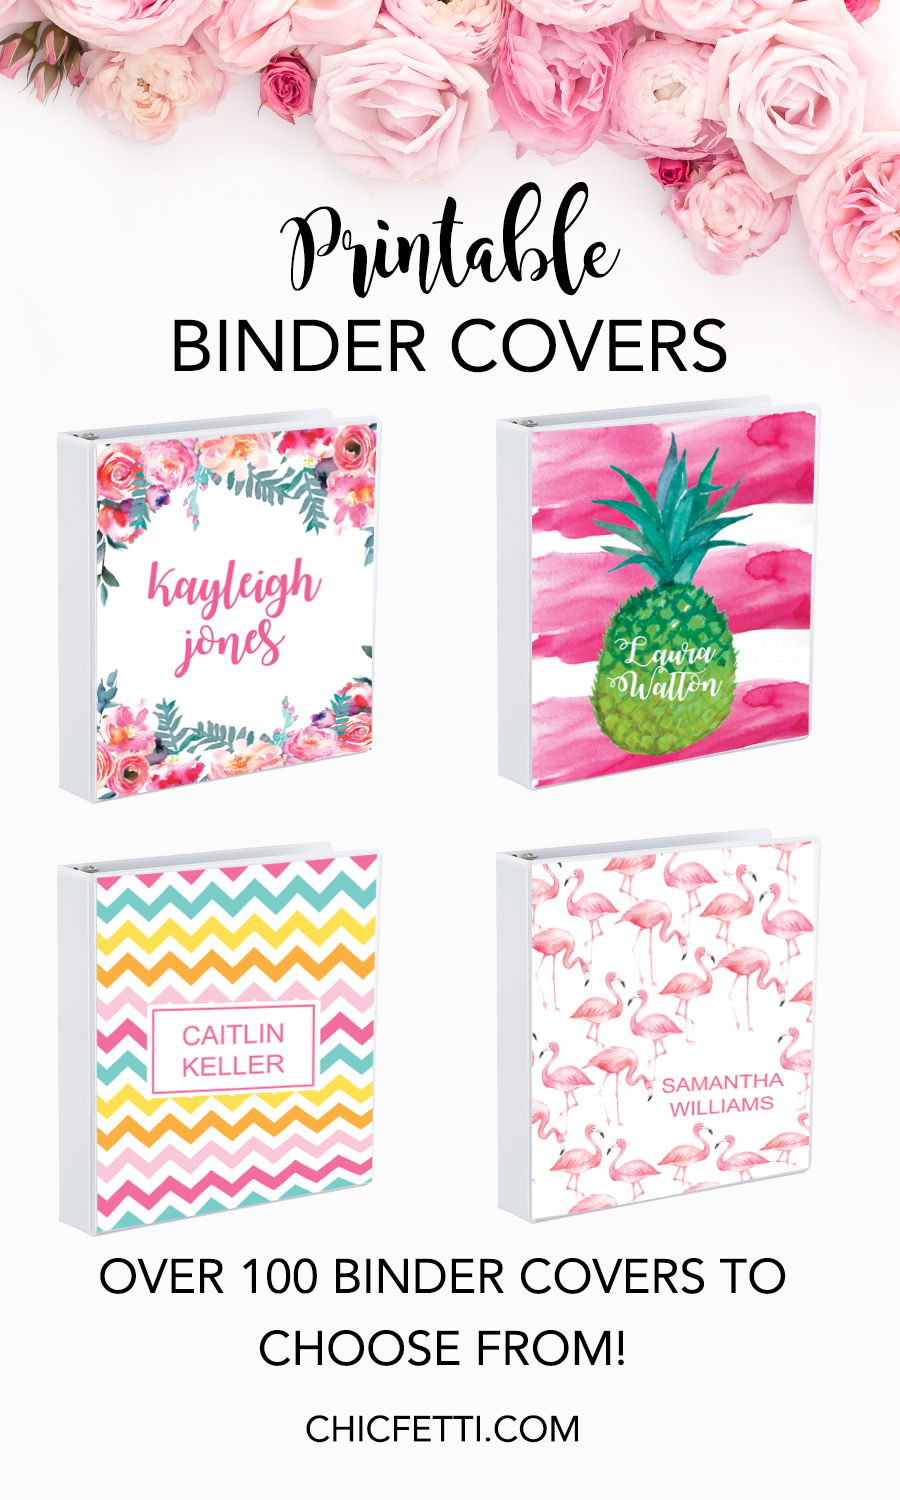 photo regarding Binder Covers Printable referred to as Printable Binder Addresses - Create Your Personal Binder Addresses with